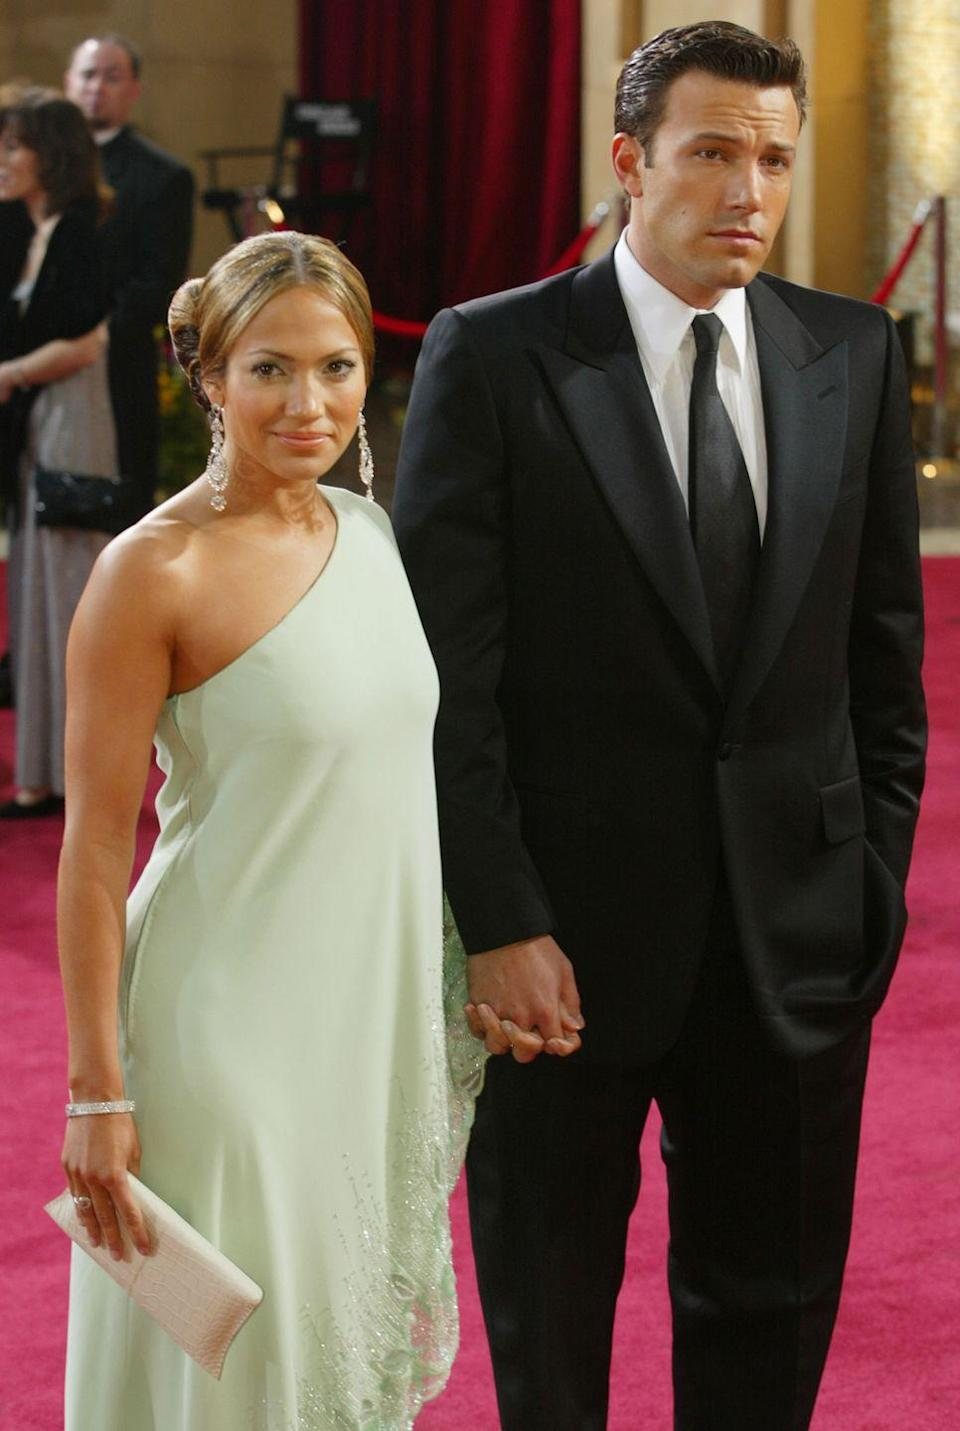 <p>Lopez and Affleck attend the 75th Annual Academy Awards on March 23, 2003 in Hollywood.</p>